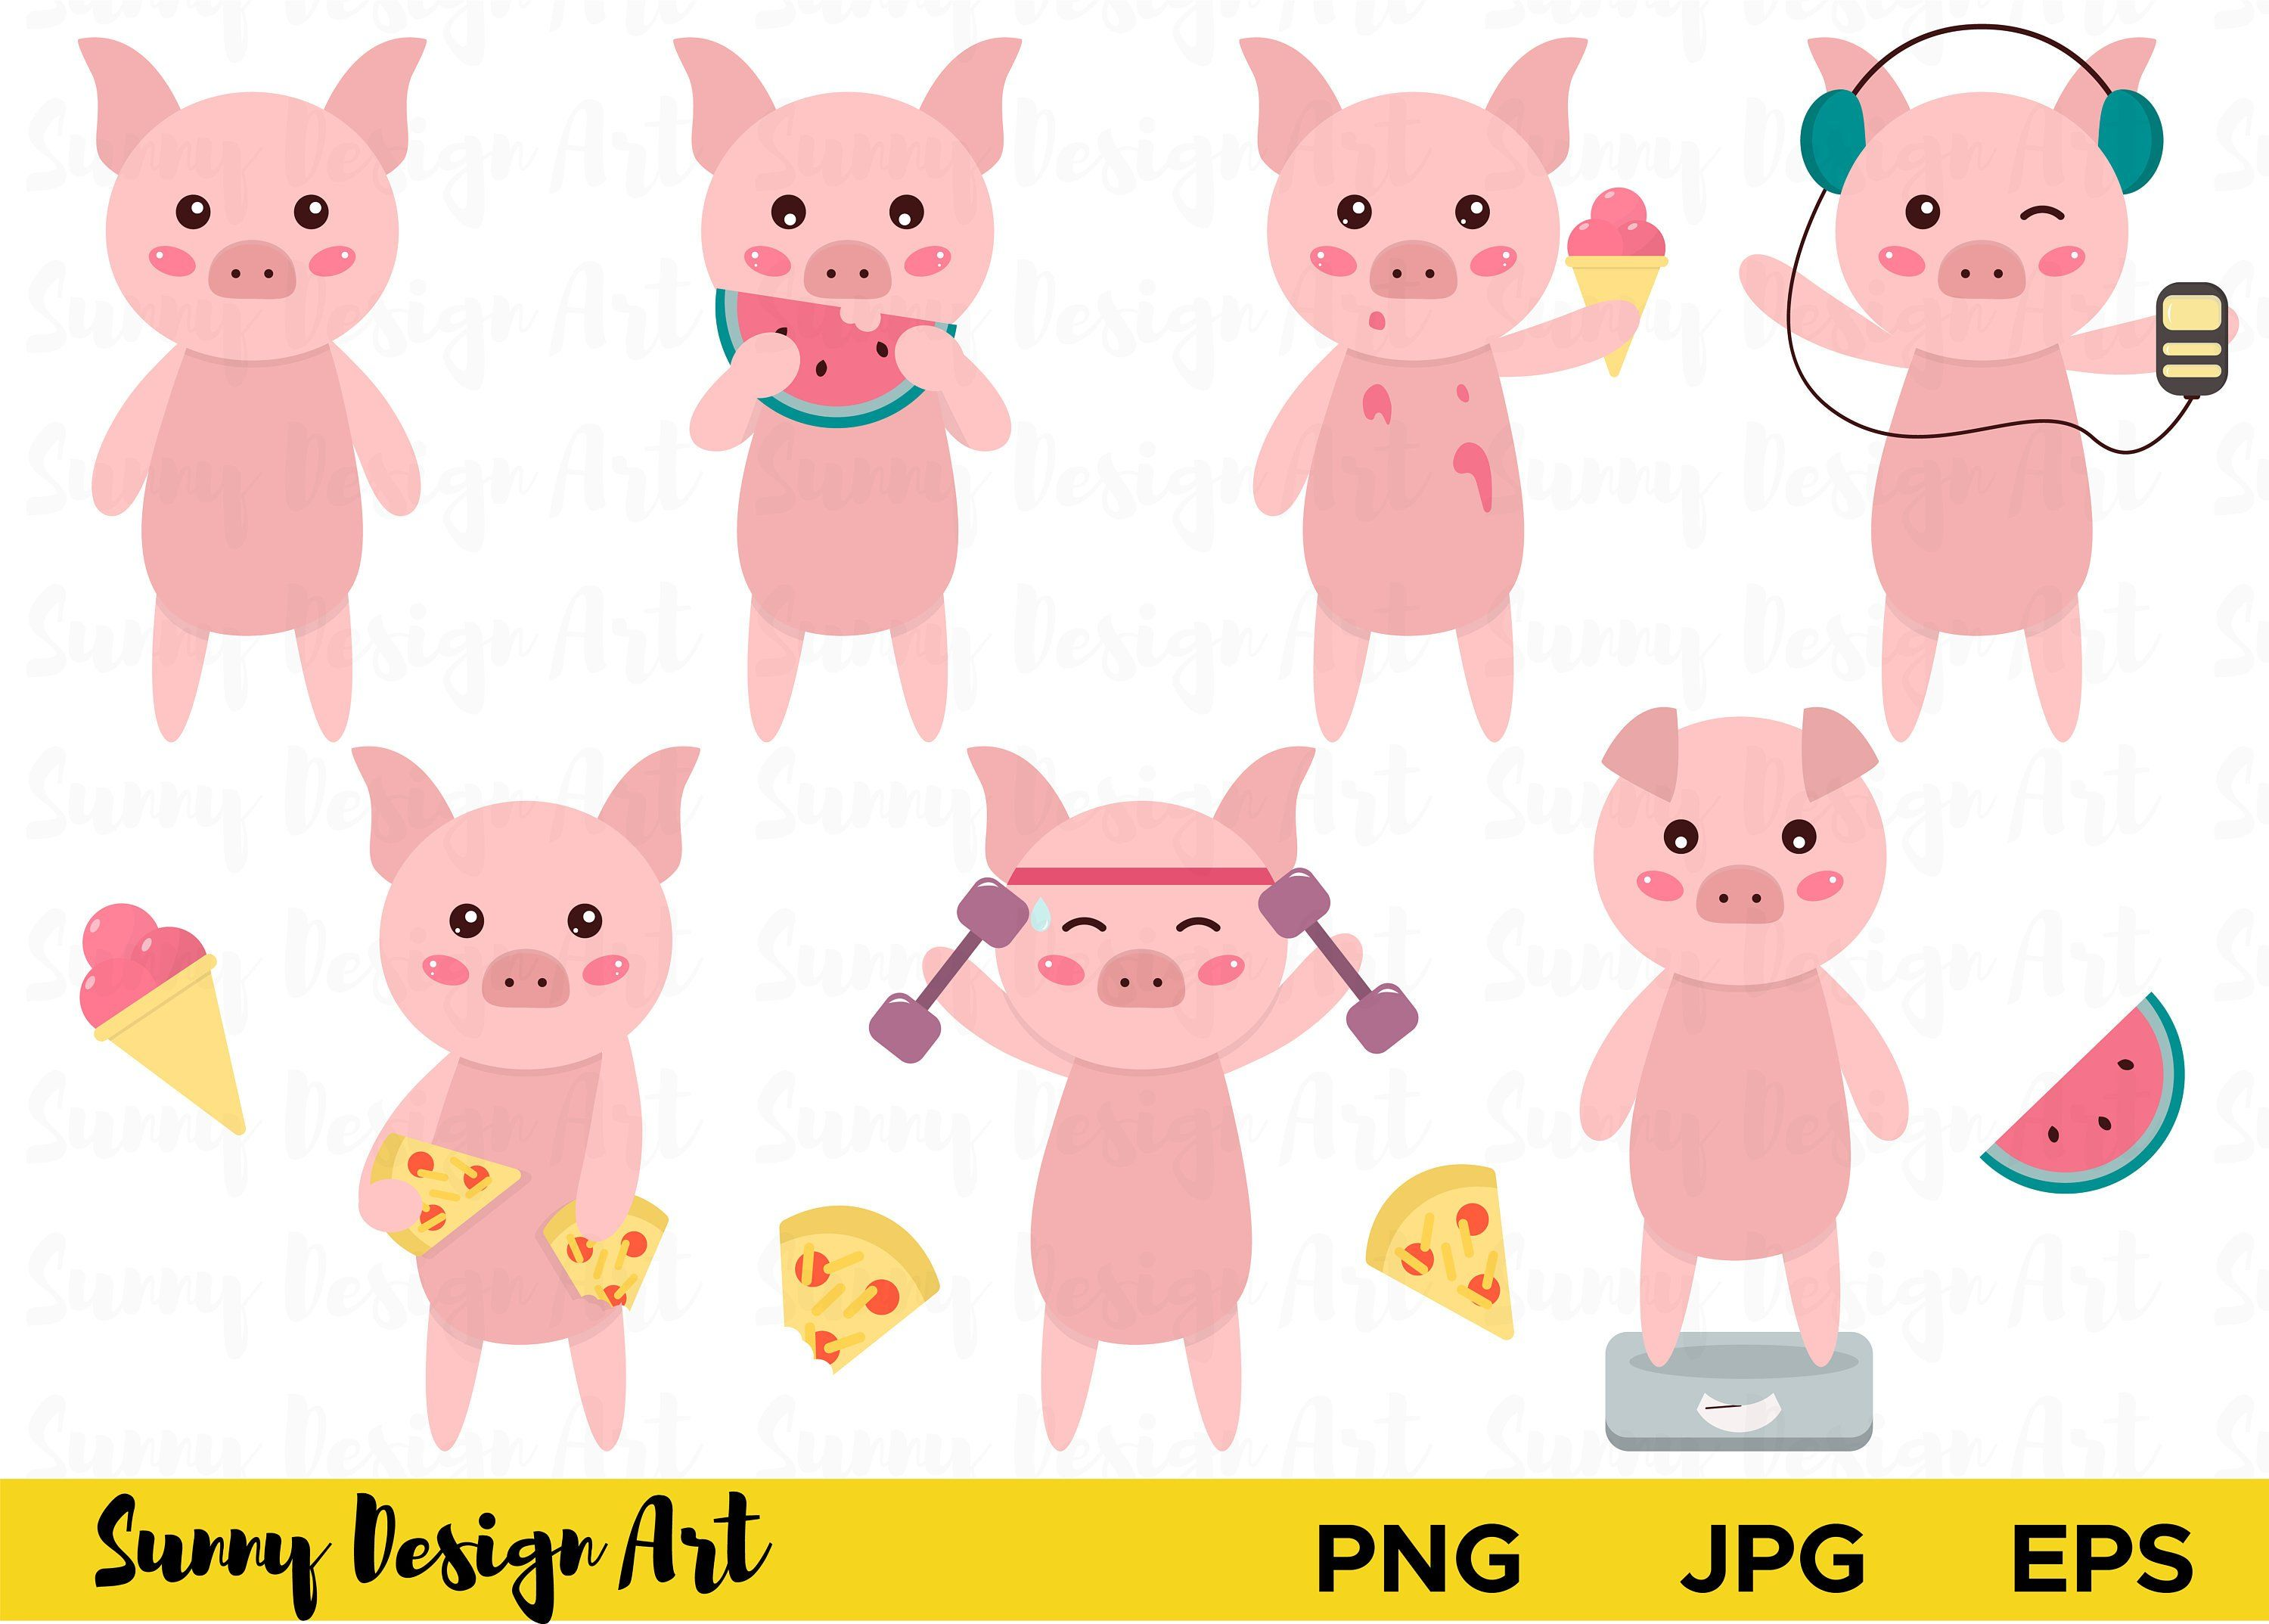 Cute pig clipart vector piglets cartoon pig pigs clipart set